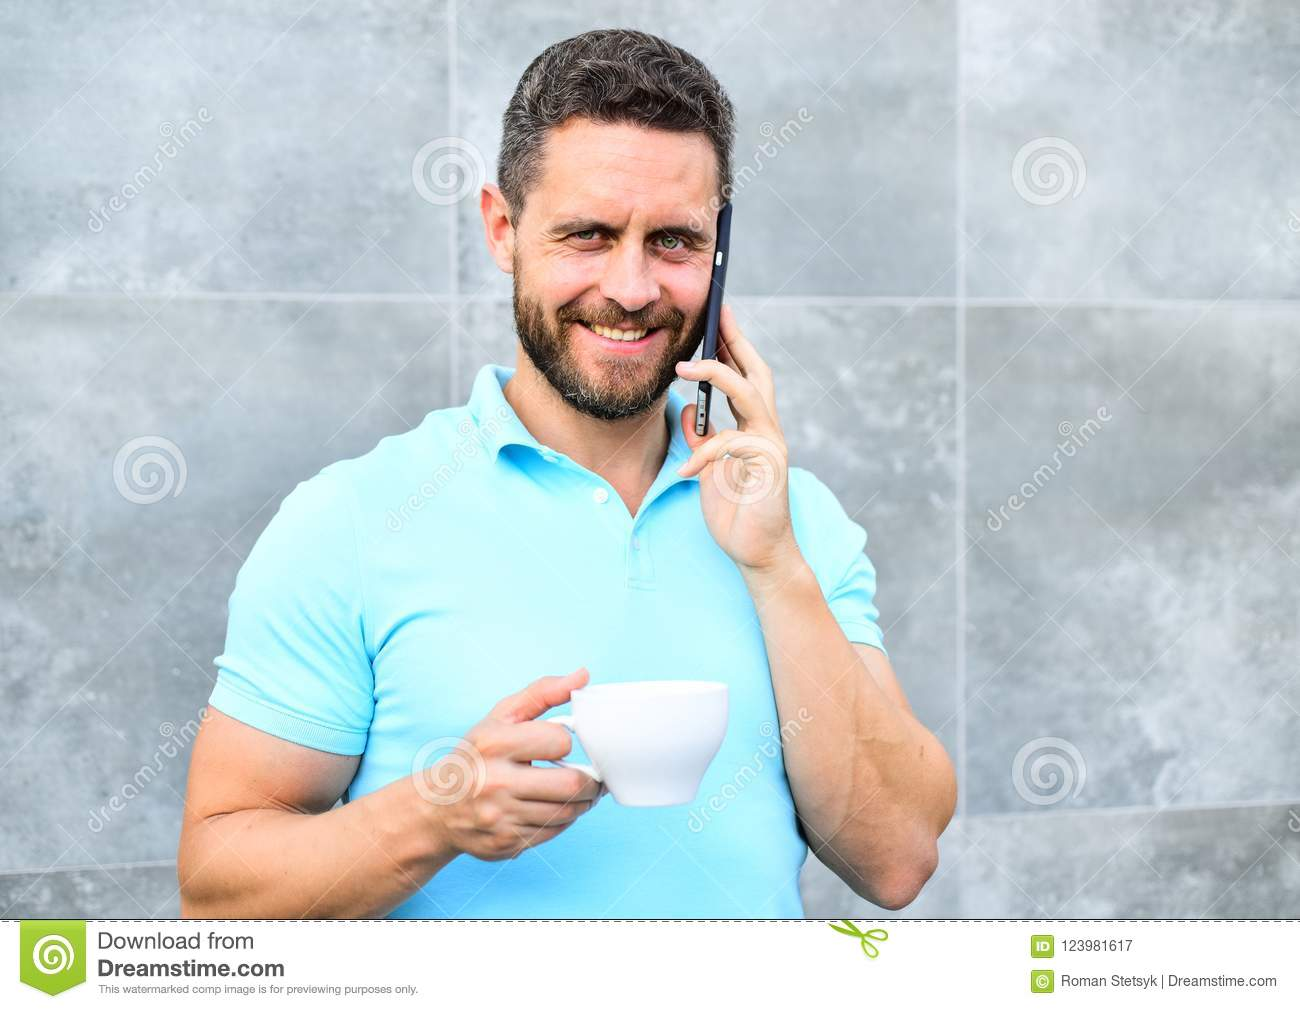 Man drink cappuccino speak phone grey wall background. Reasons entrepreneurs drink coffee. Even if you drink coffee on